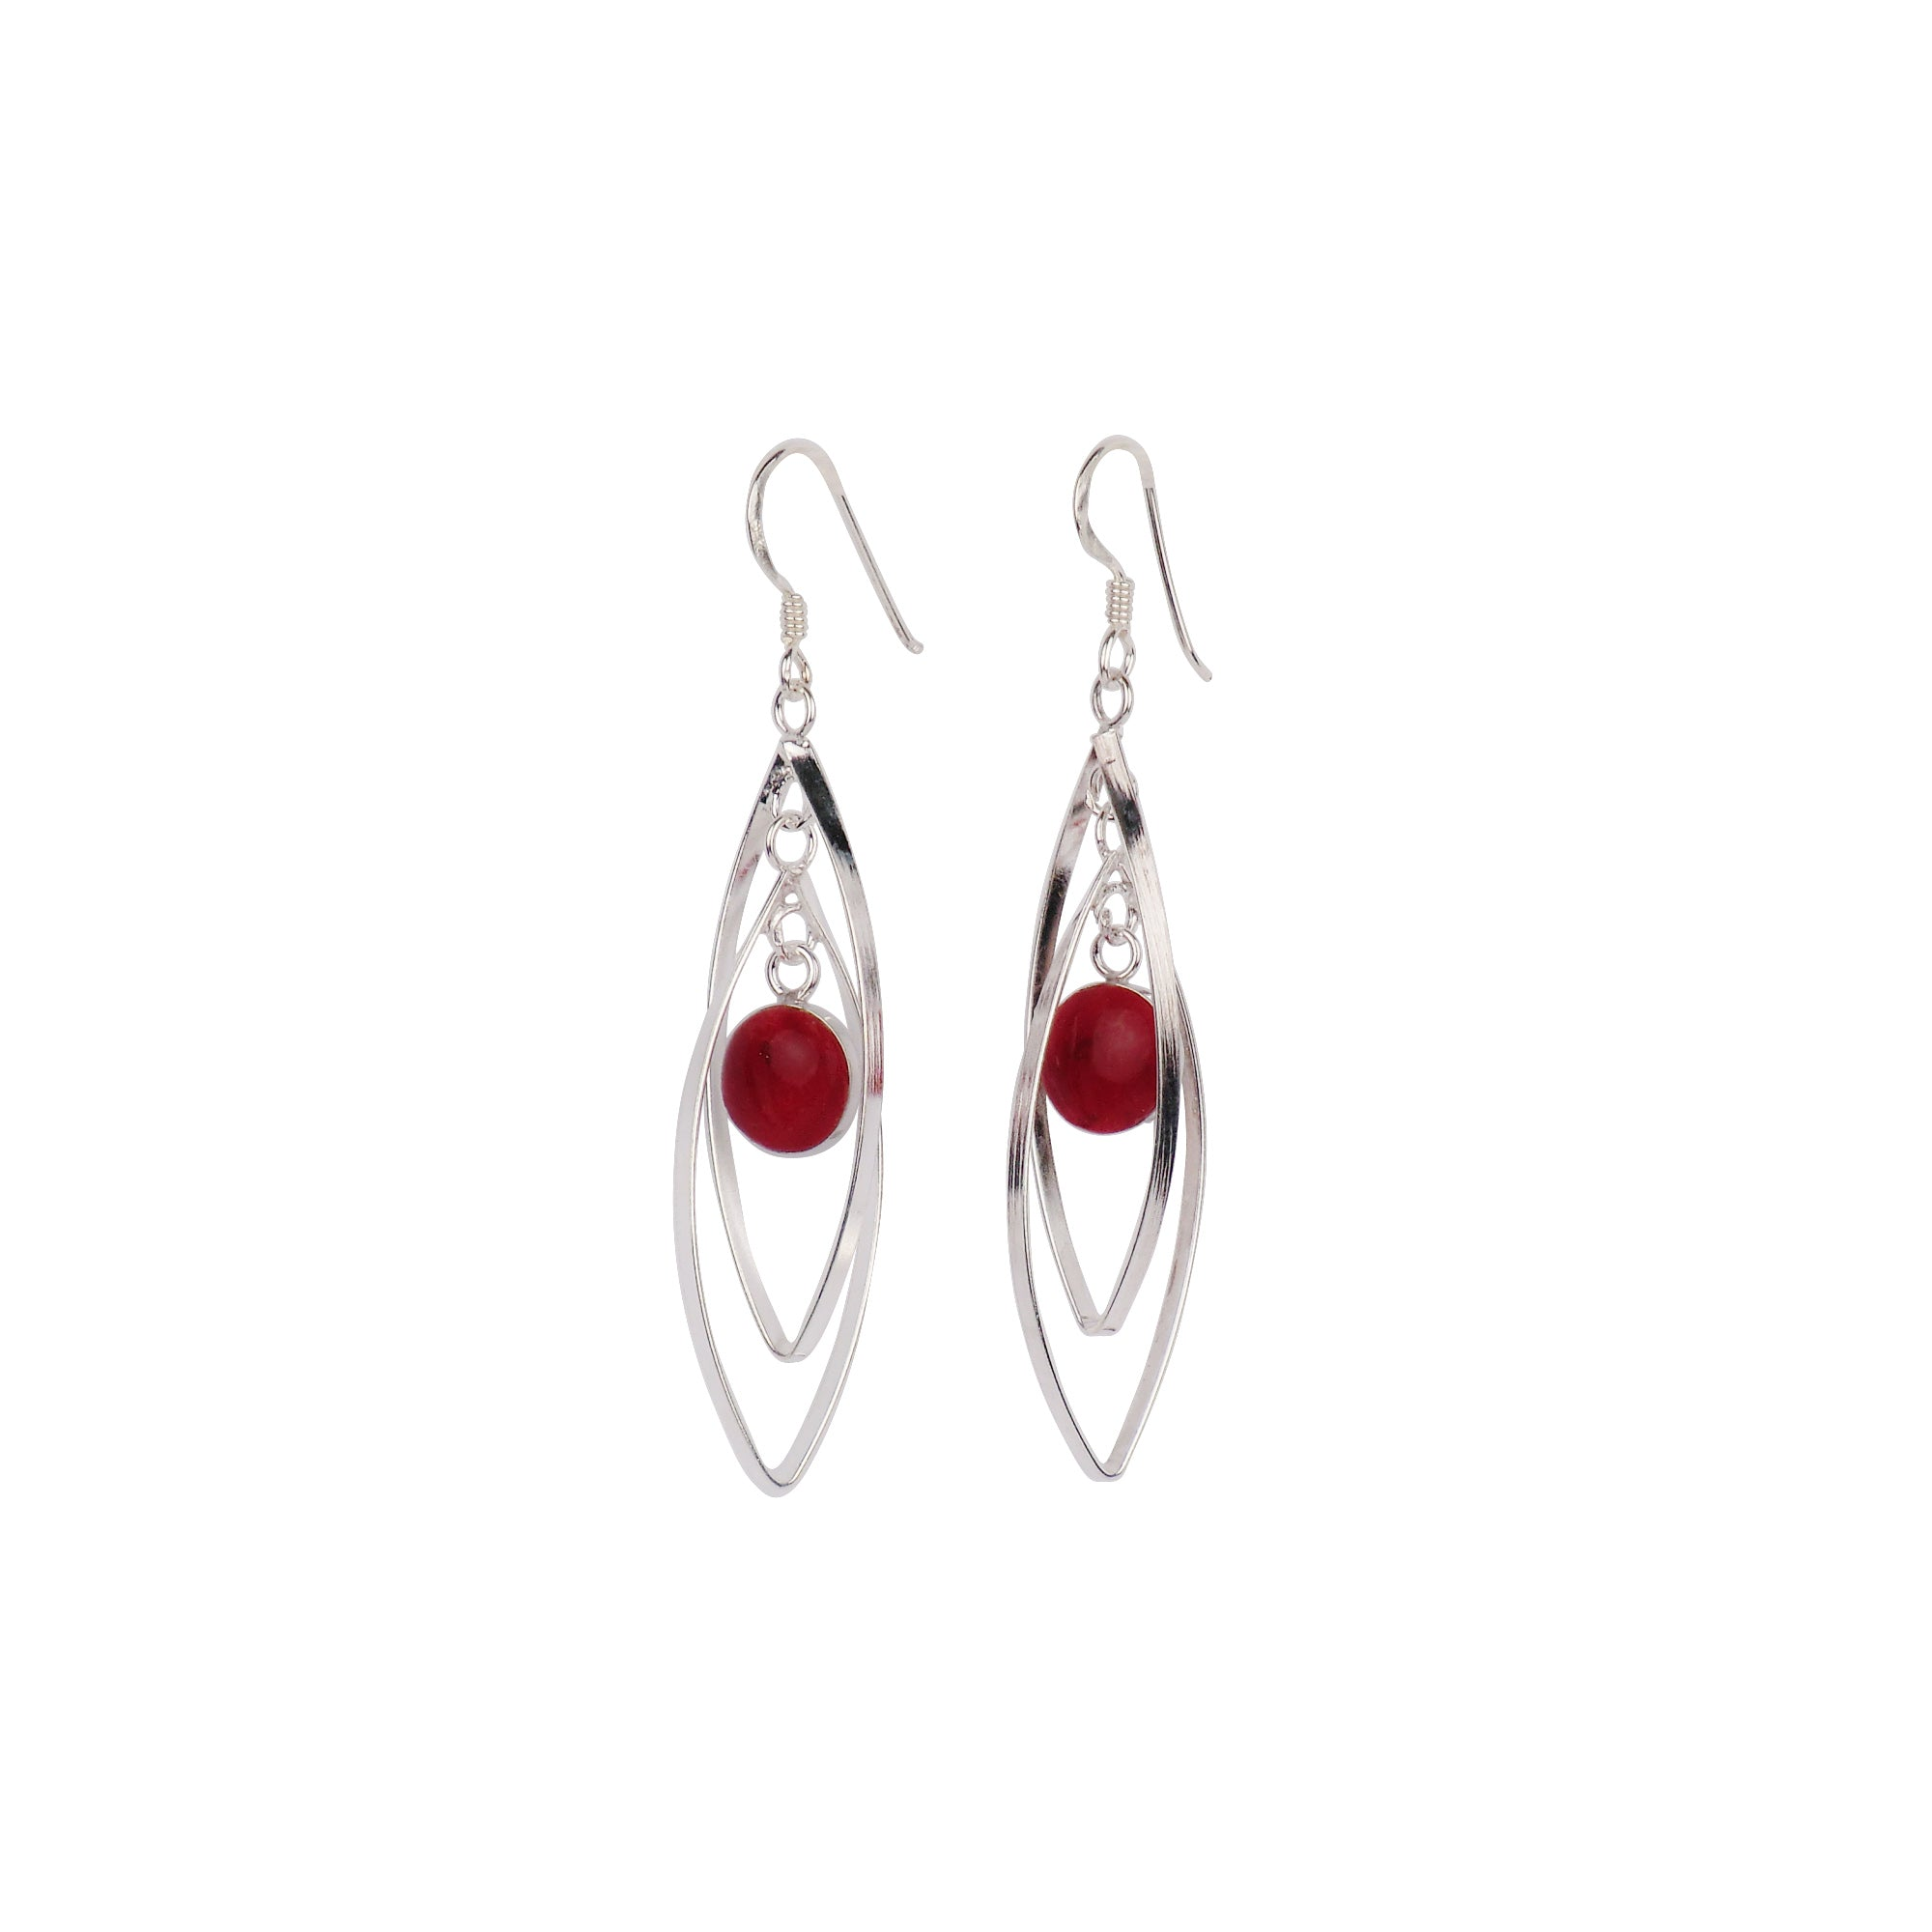 Sterling Silver Dangly Earrings with Stone - Matico